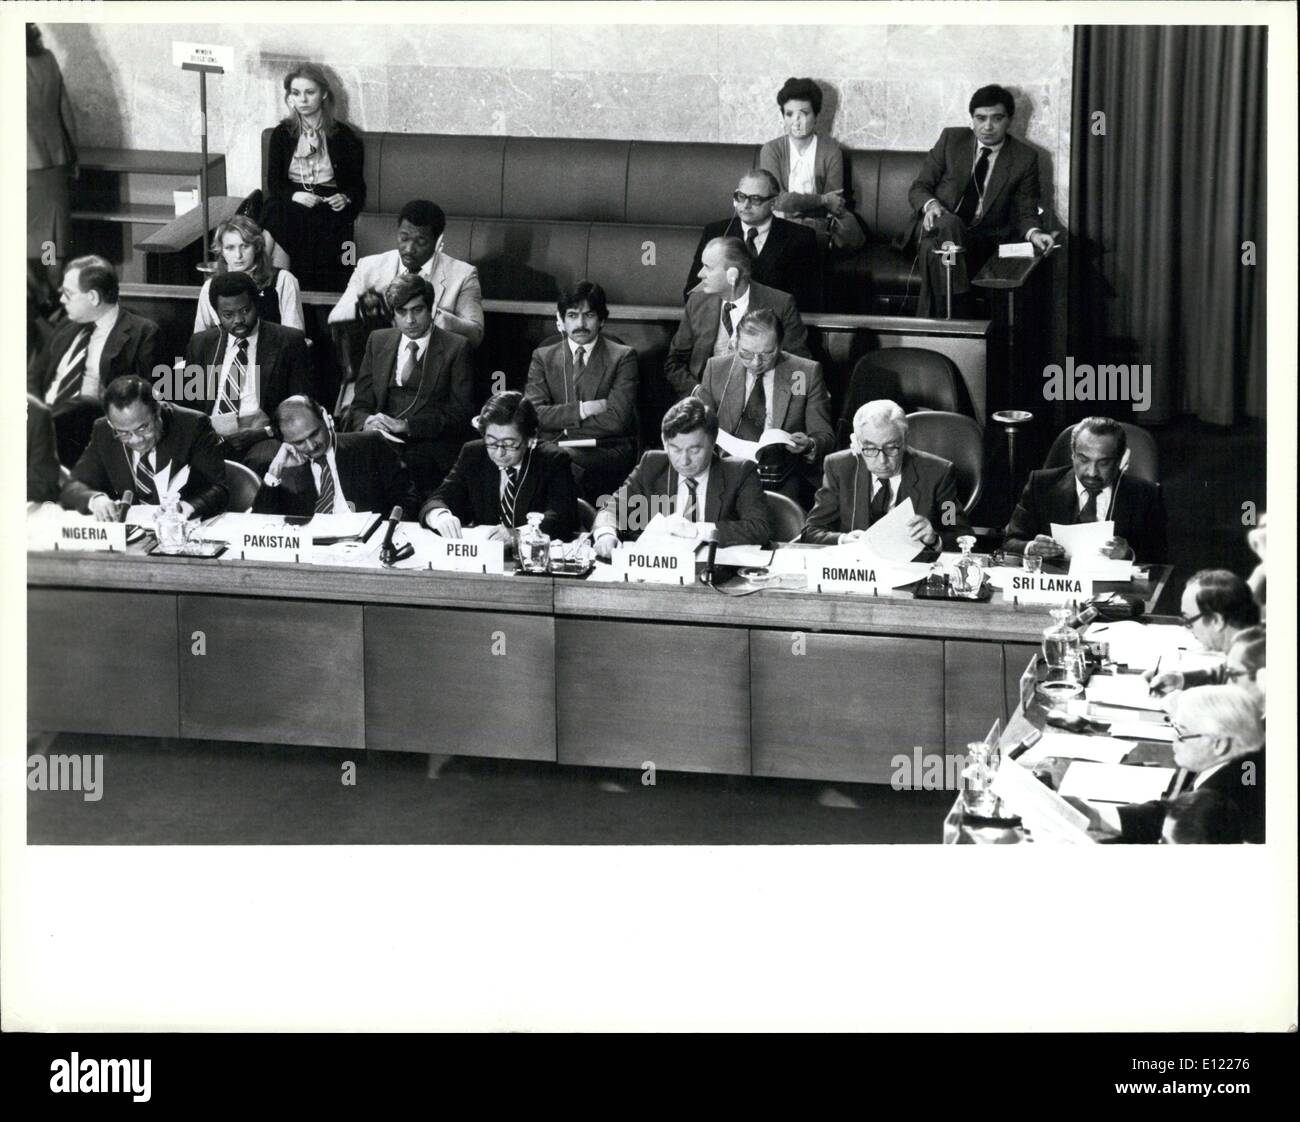 Feb. 02, 1982 - Committee on Disarmament begins 1982 session. United Nations, Geneva, 25 February 1982 ? The Committee on Disarmament, the world?s principal forum for multilateral negotiations in the field of disarmament, this morning began its 1982 session at the Palais des Nations. It has been requested to submit to the General Assembly?s Second Special Session on disarmament (New York, 7 June to 9 July, 1982) a special report on the state of negotiations of the various questions under consideration by the Committee - Stock Image